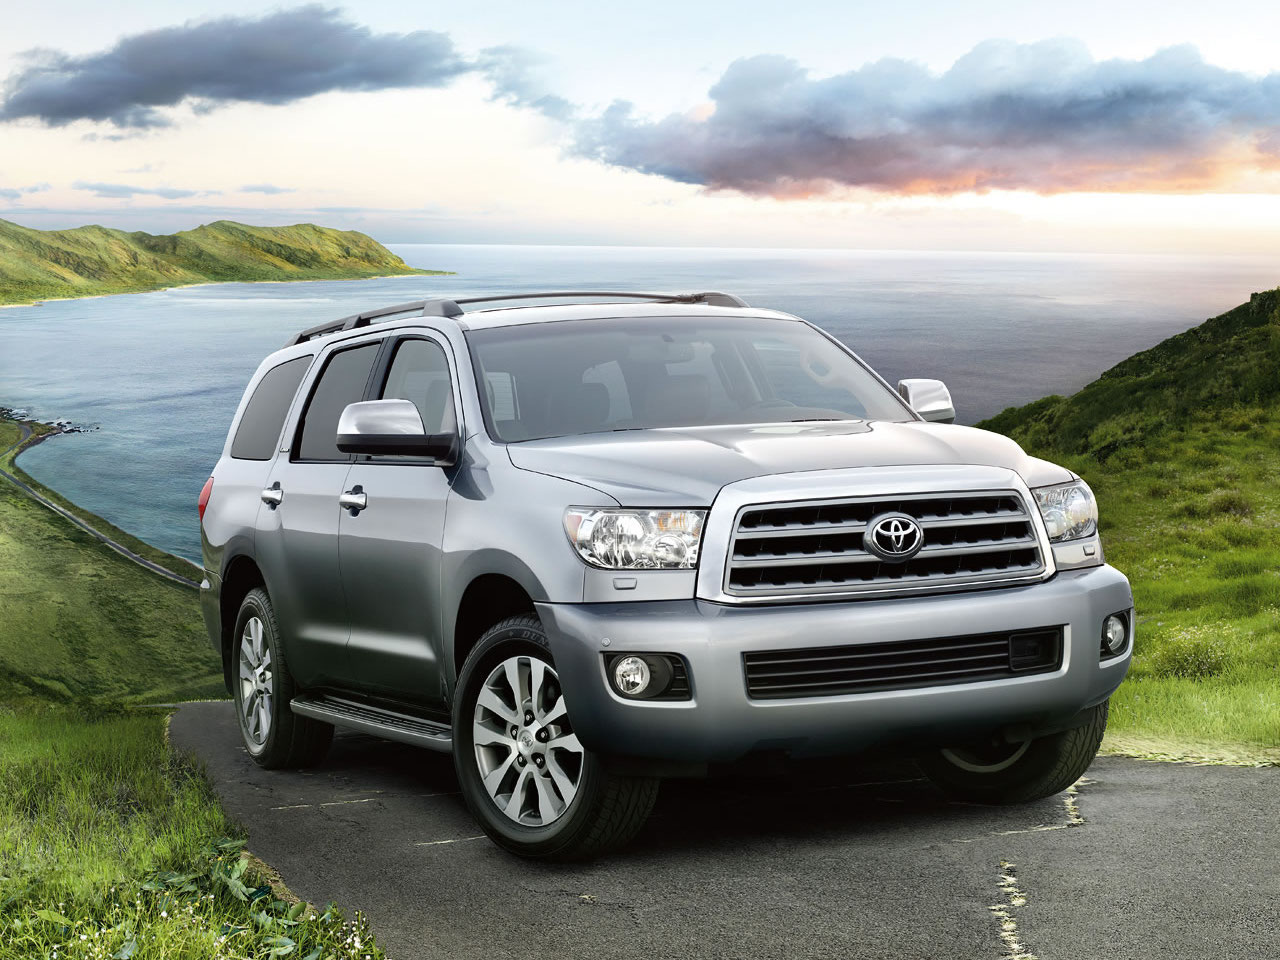 2017 toyota sequoia for sale near san diego toyota of el cajon. Black Bedroom Furniture Sets. Home Design Ideas